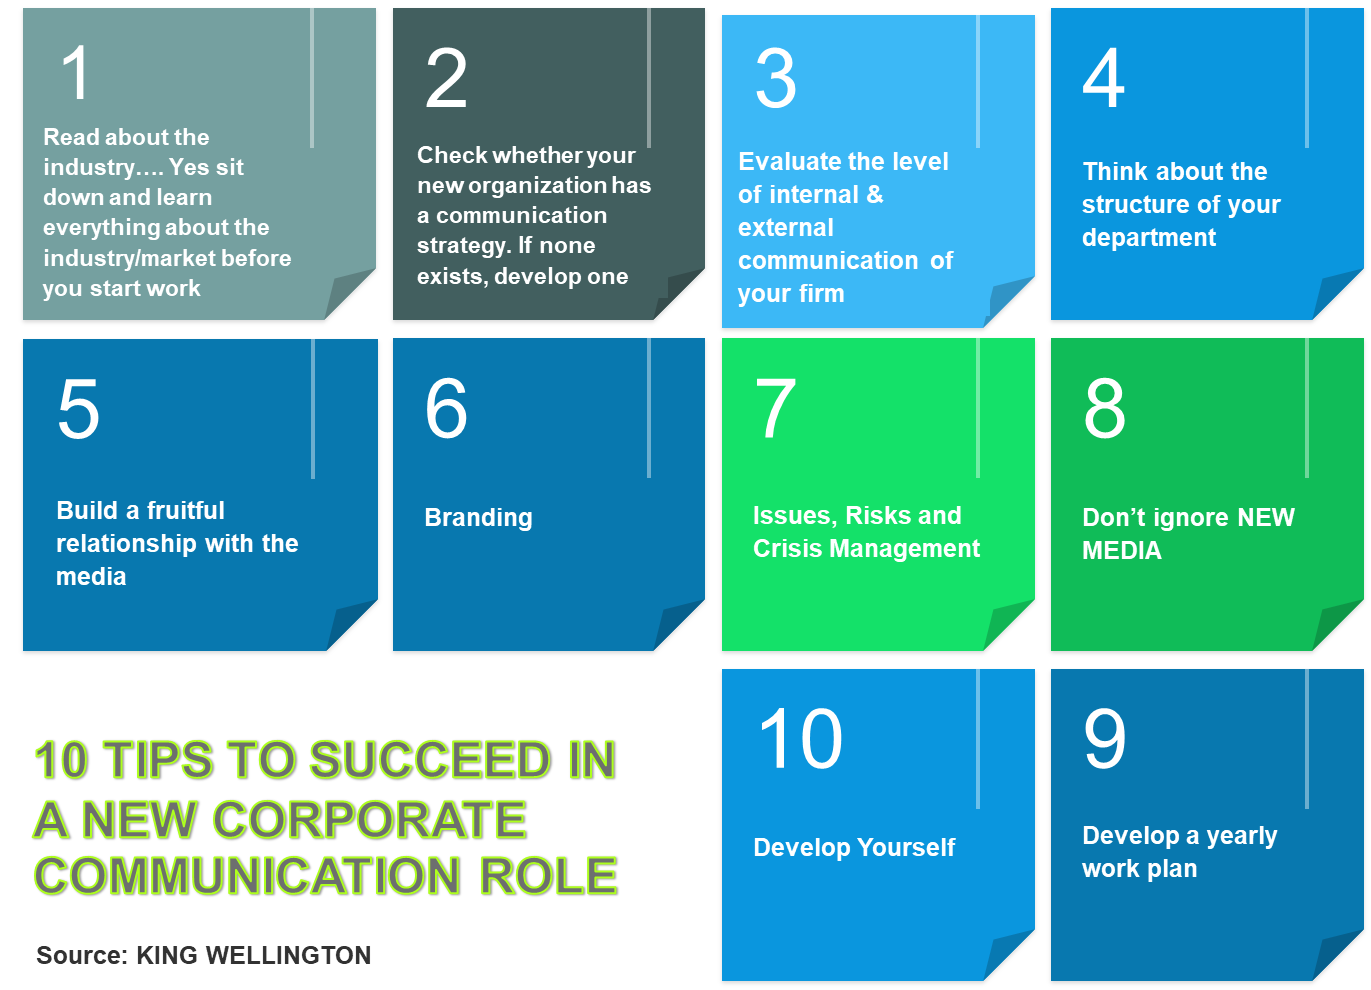 10 Tips To Succeed in a New Corporate Communication Role.png